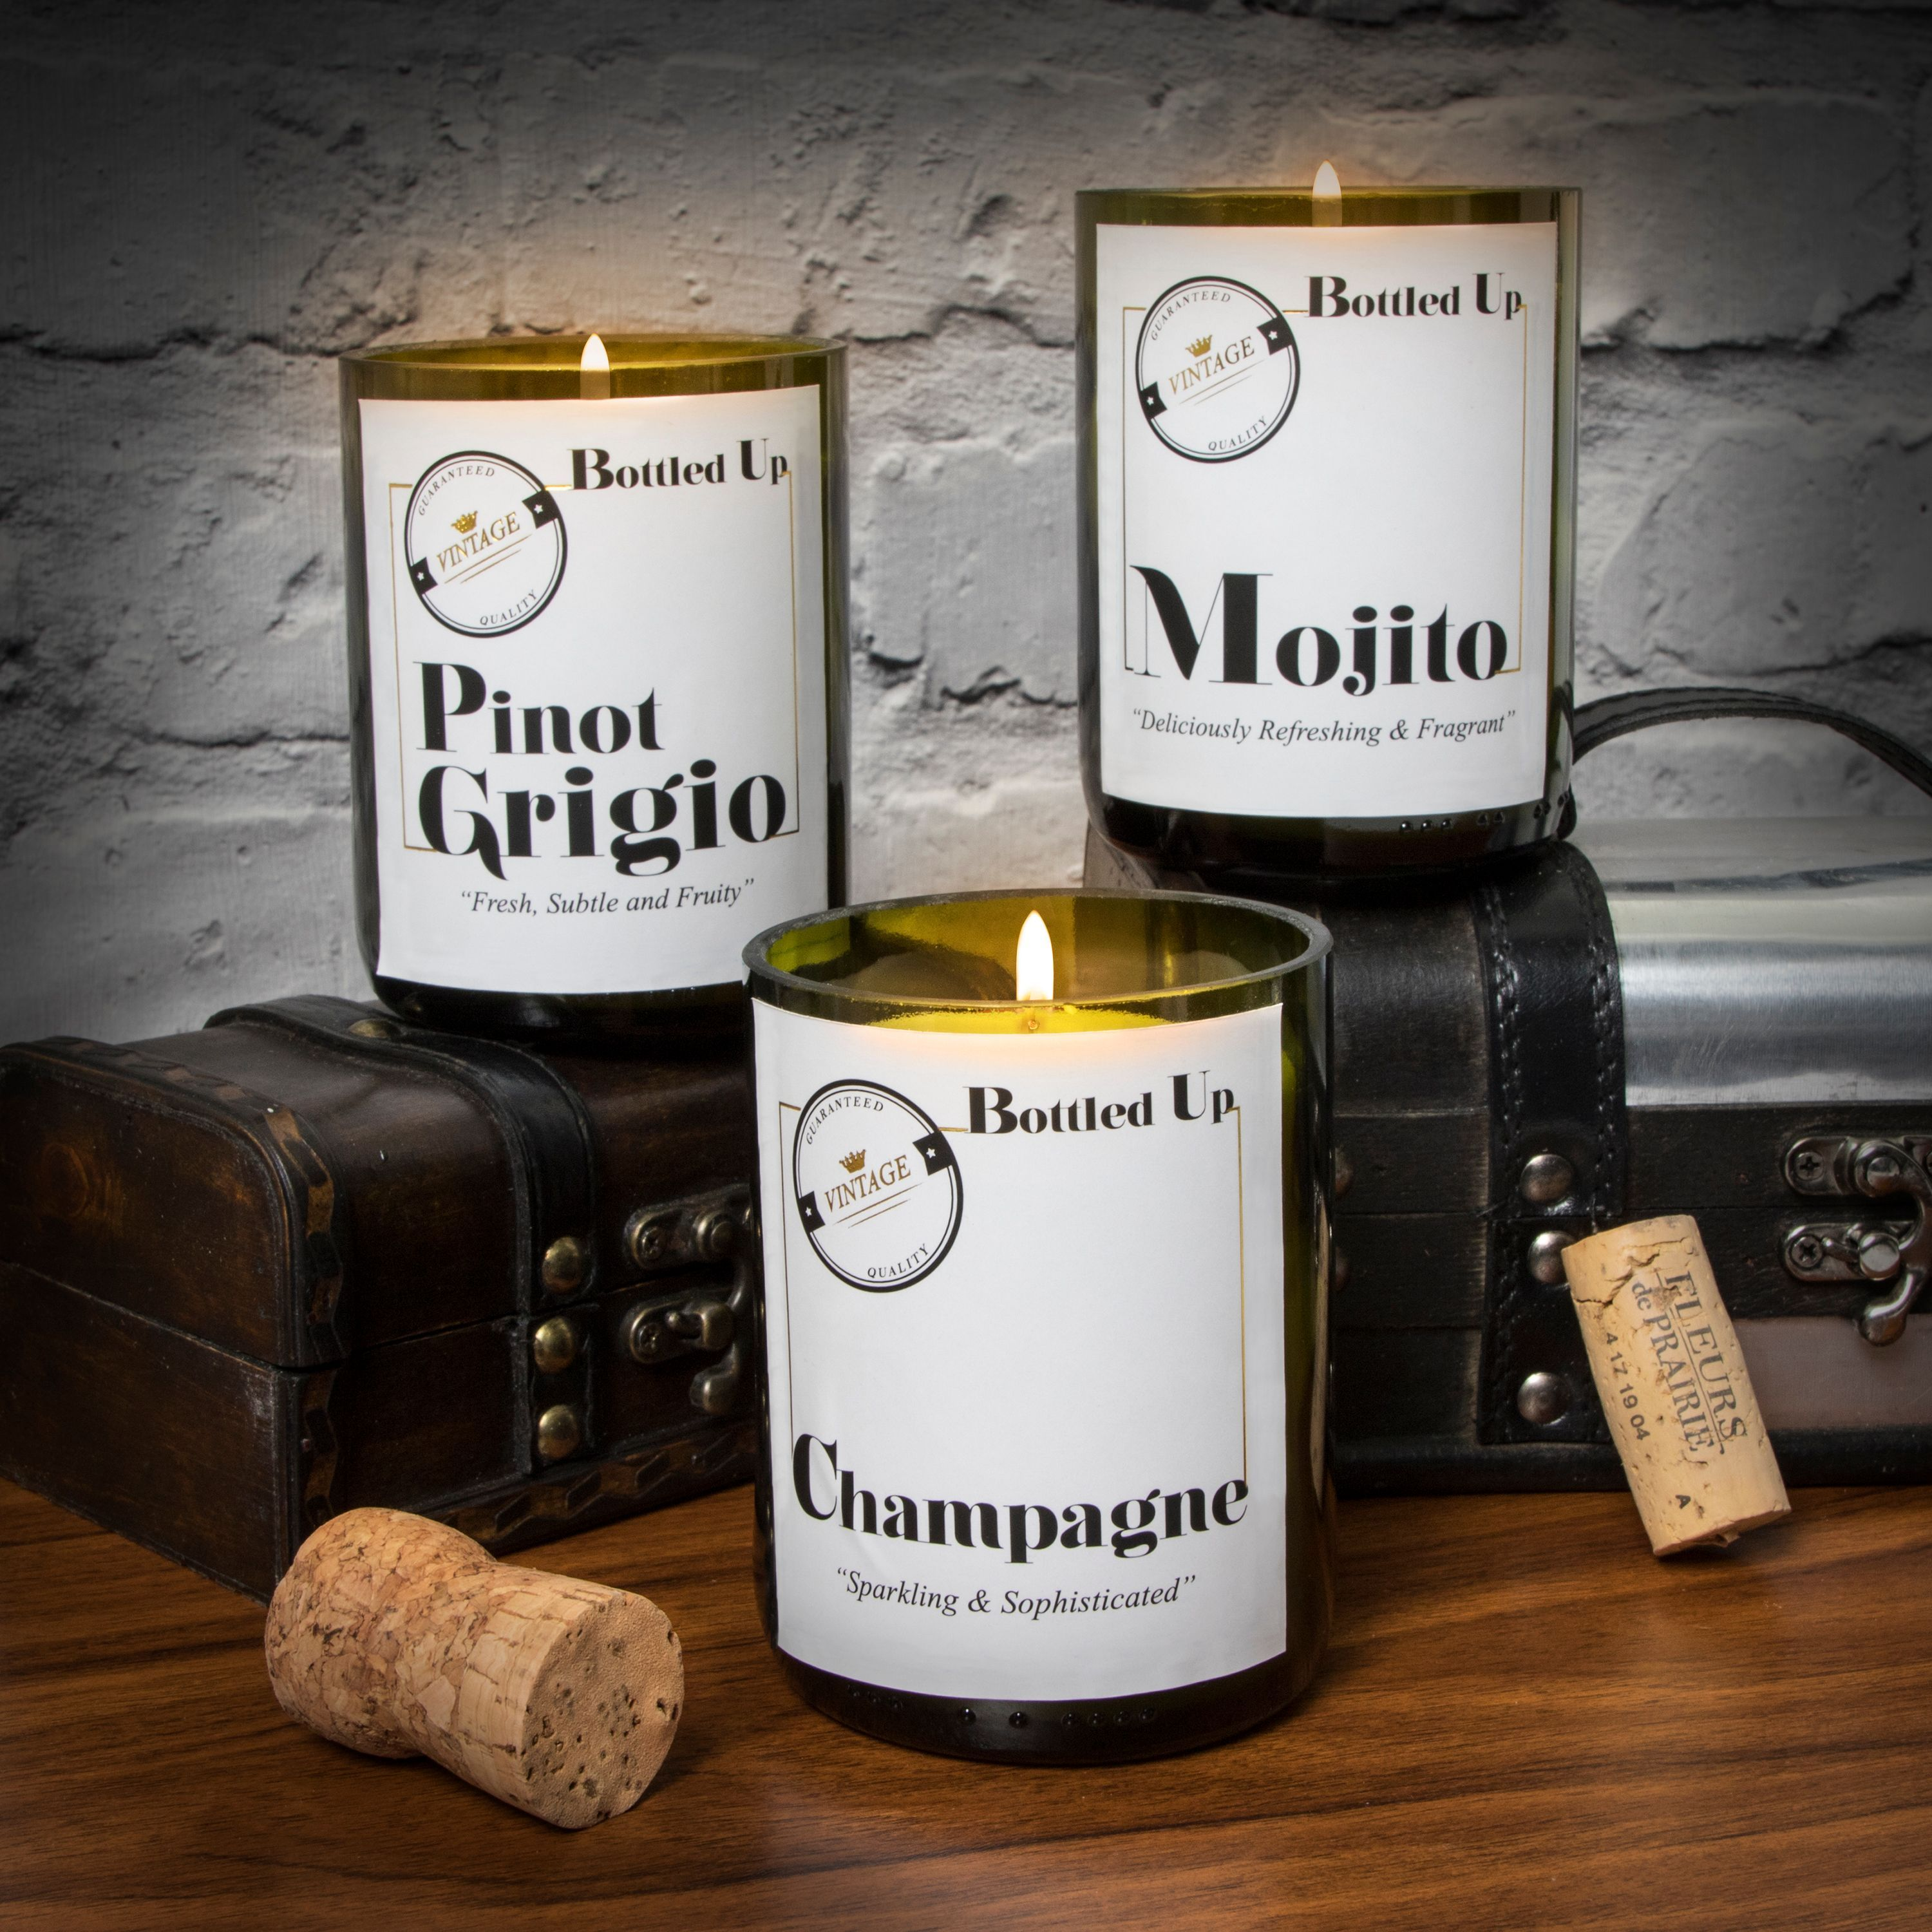 Bottled Up Scented Candles Made From Real Recycled Wine